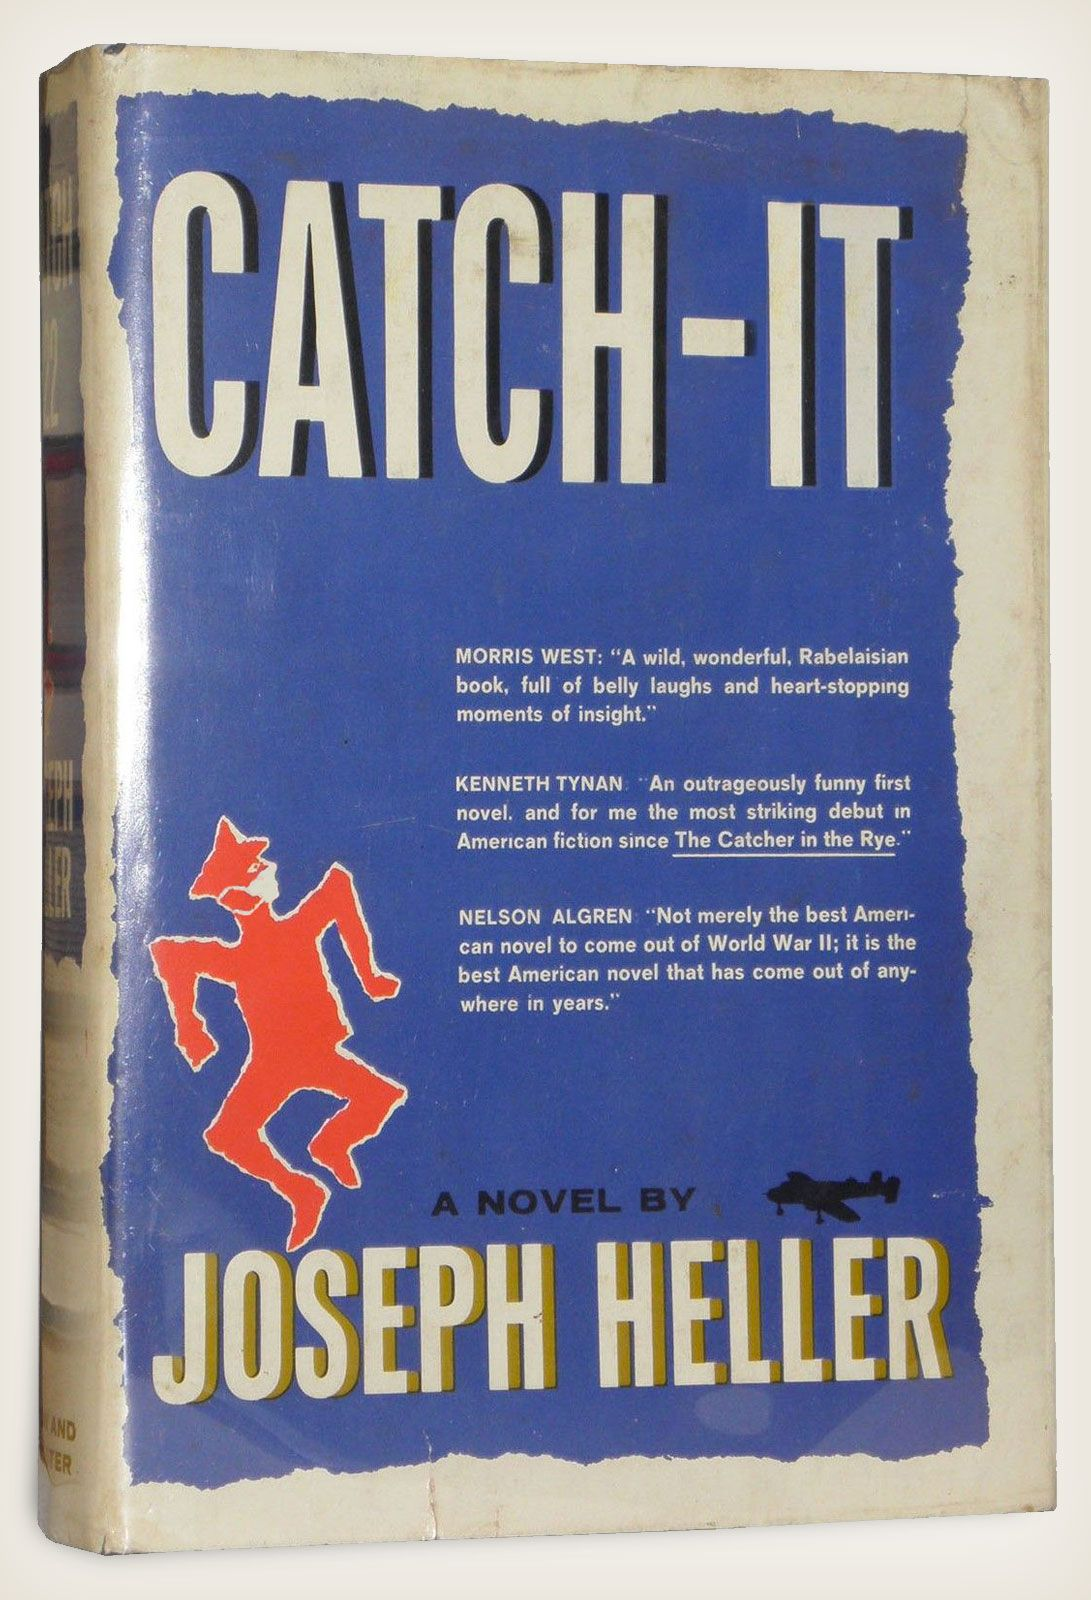 Catch-it (Catch-22, by Joseph Heller)